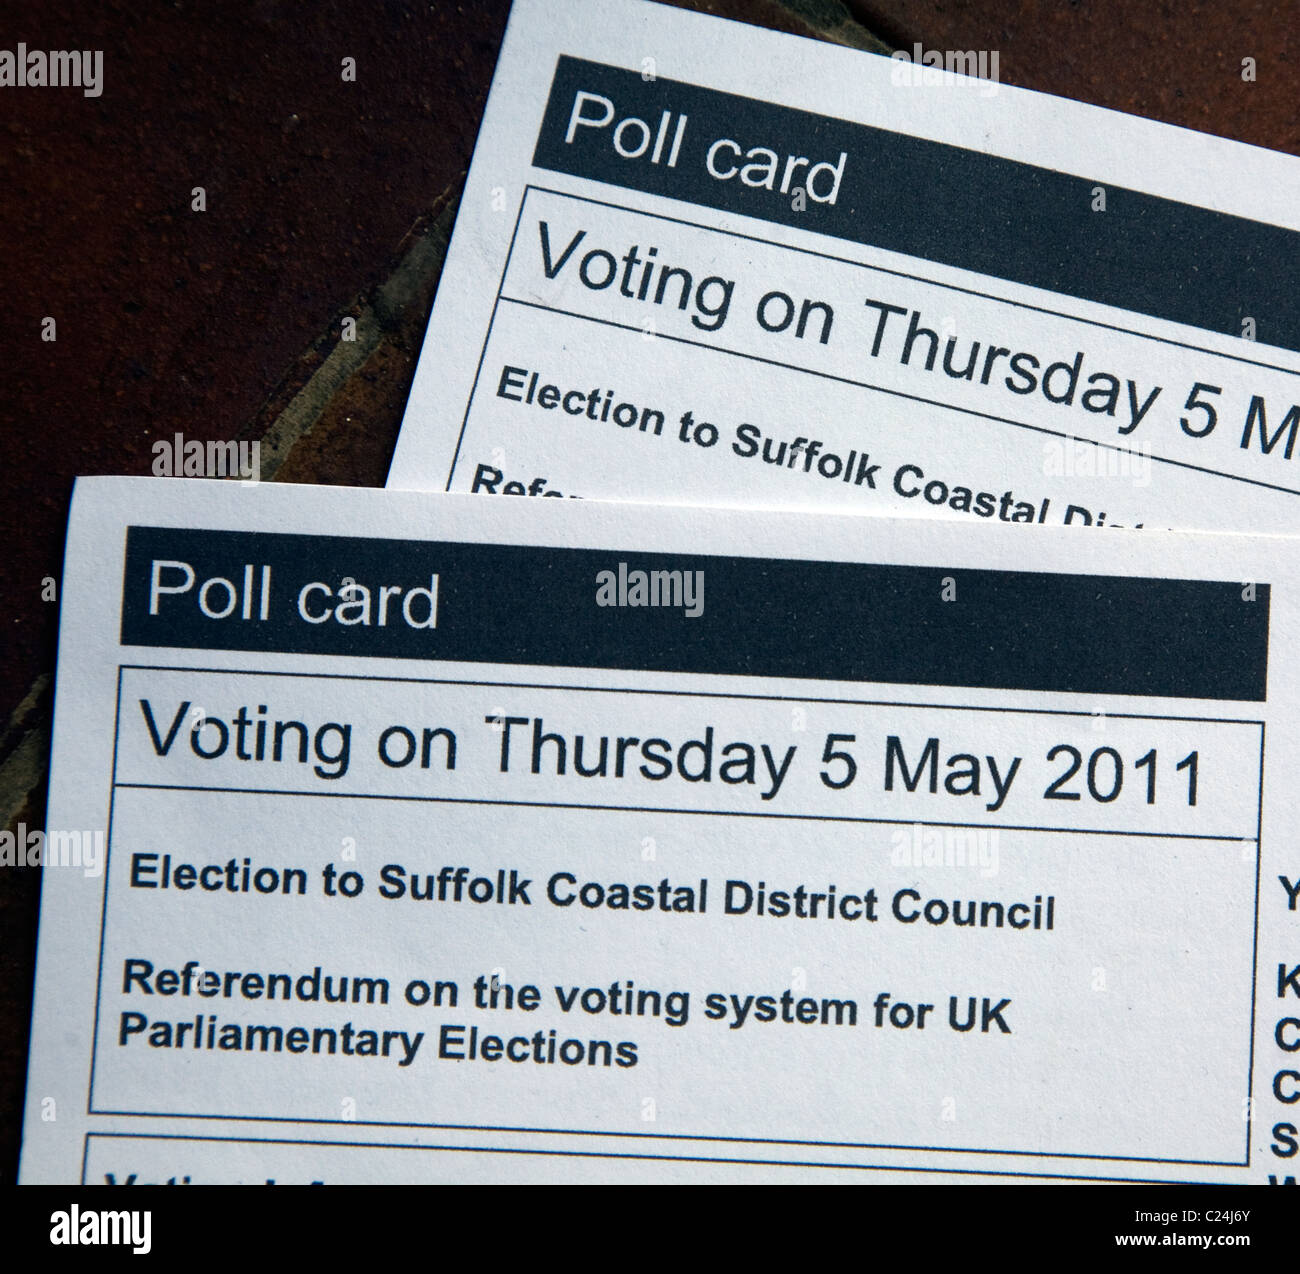 Poll cards for local elections 5 May 2011 - Stock Image